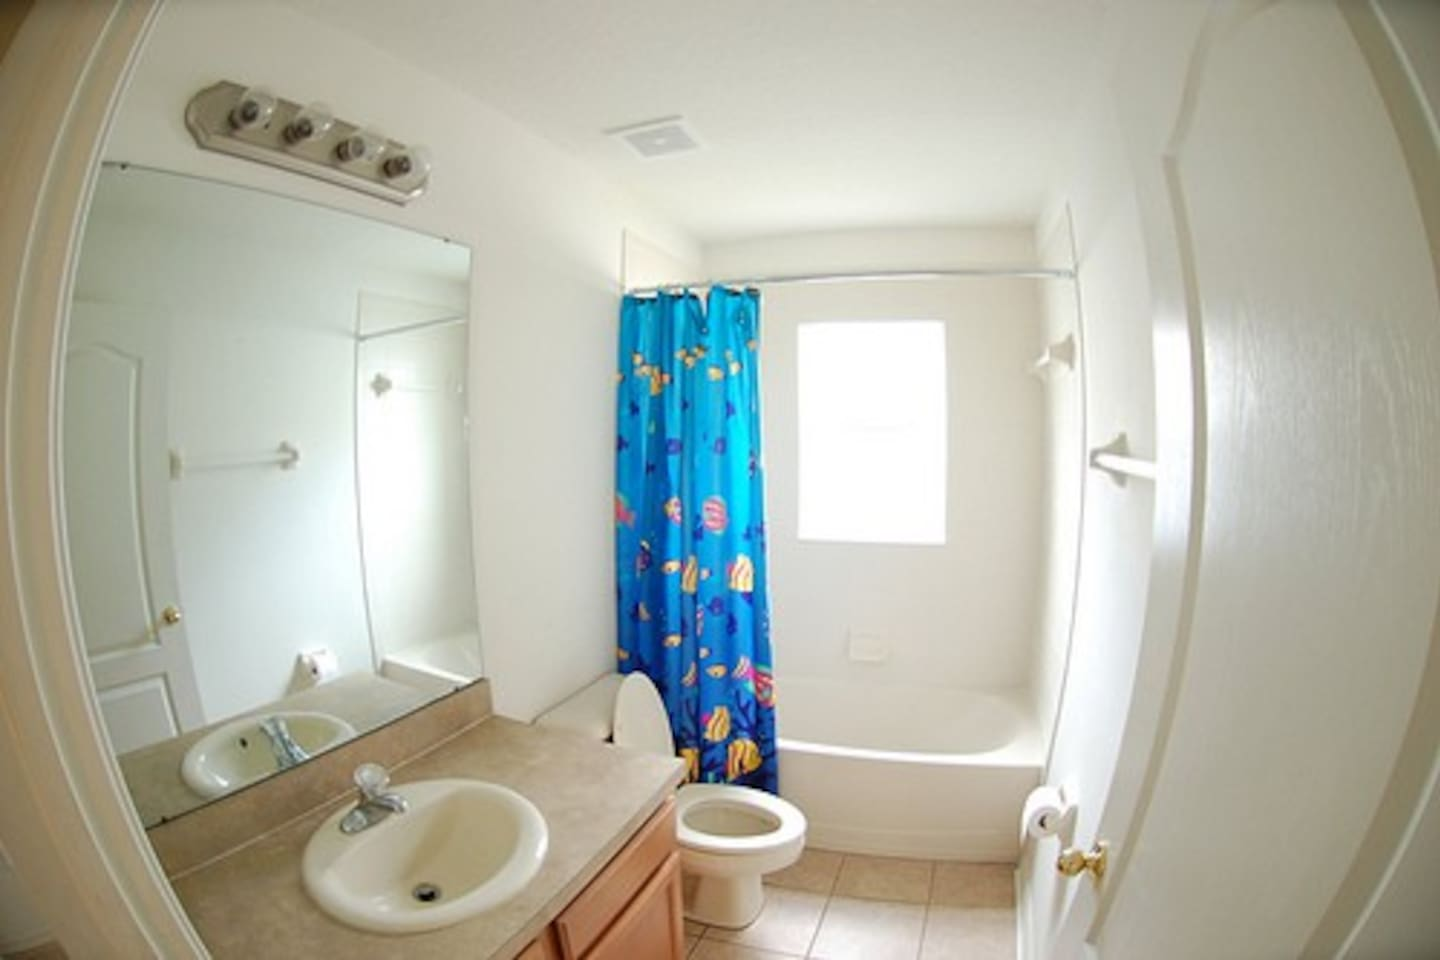 Bathroom.  Very clean and bright.